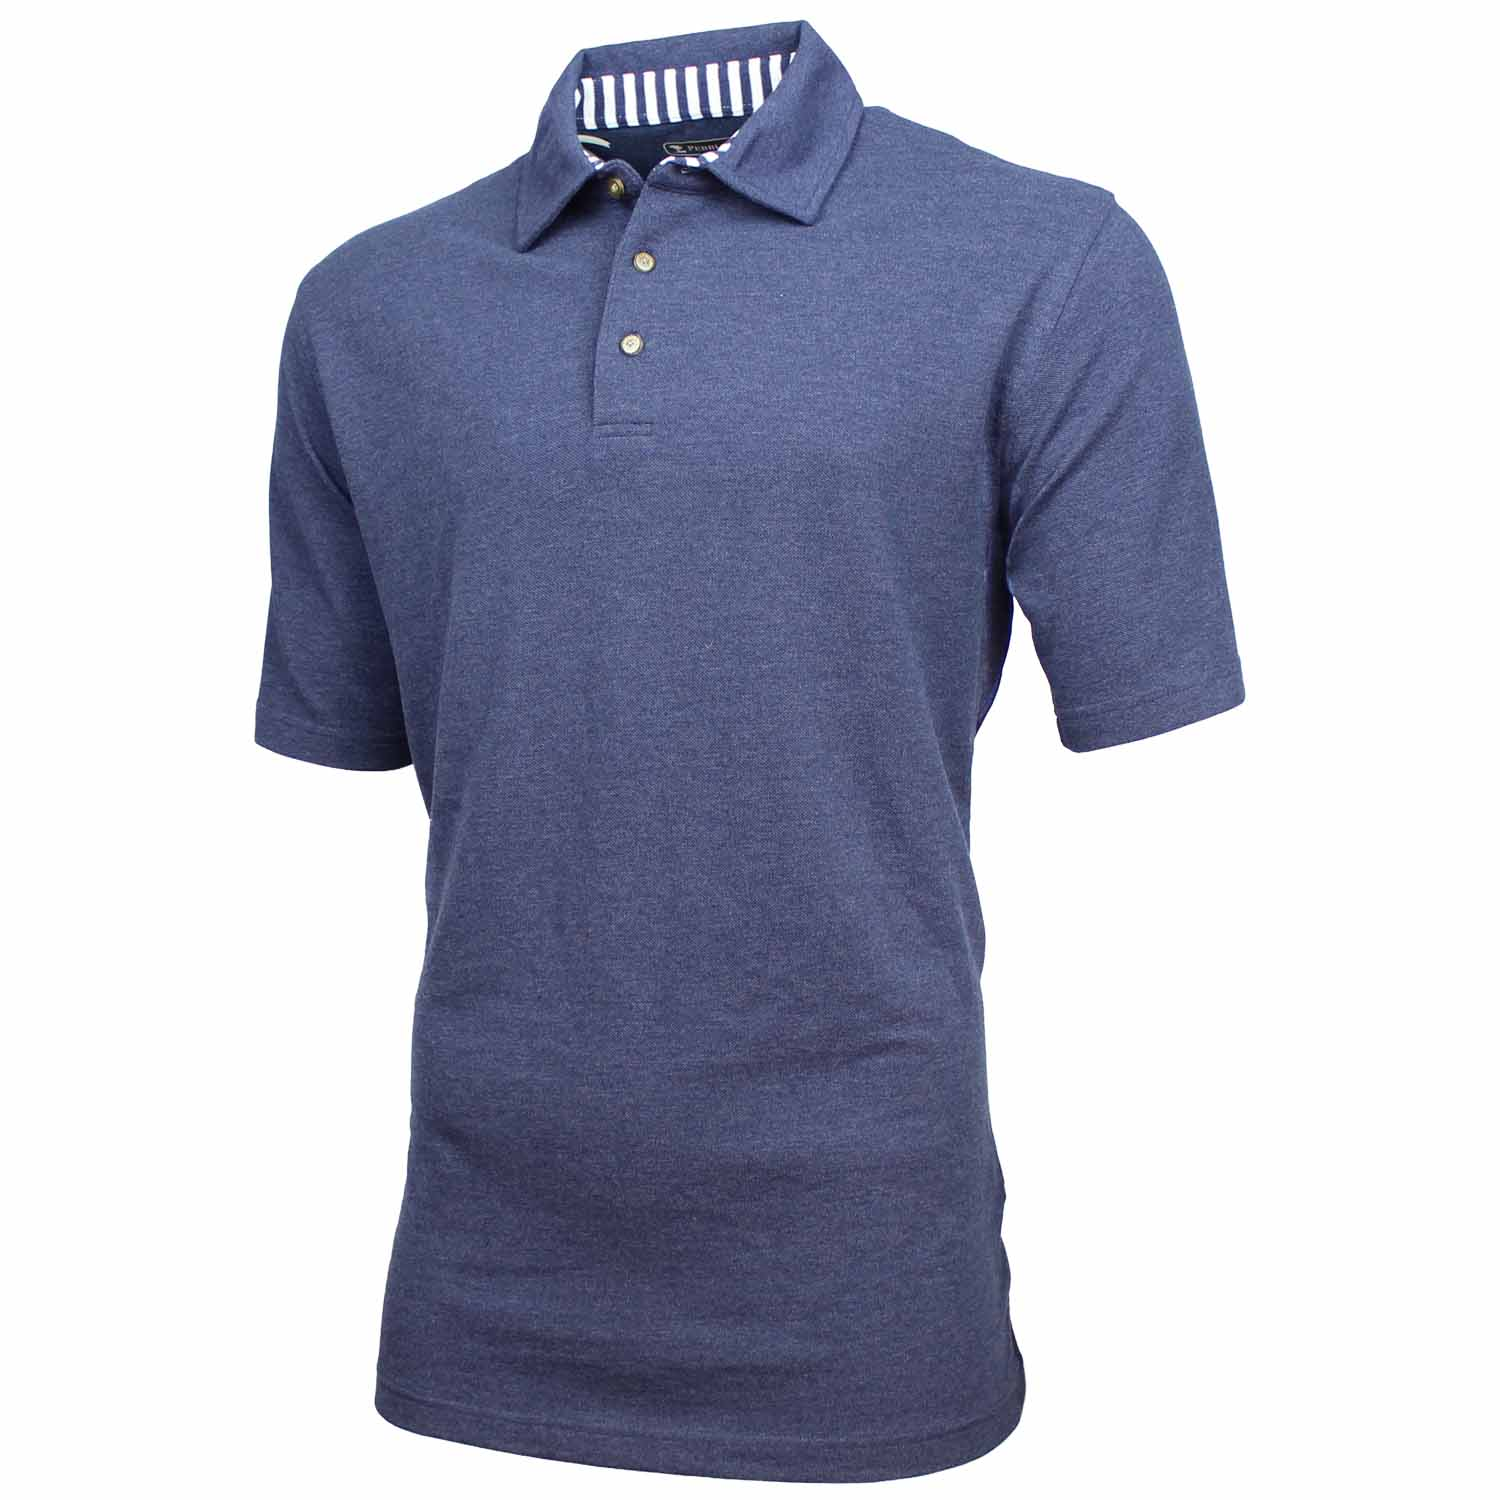 pebble beach mens performance golf polo shirt ebay. Black Bedroom Furniture Sets. Home Design Ideas